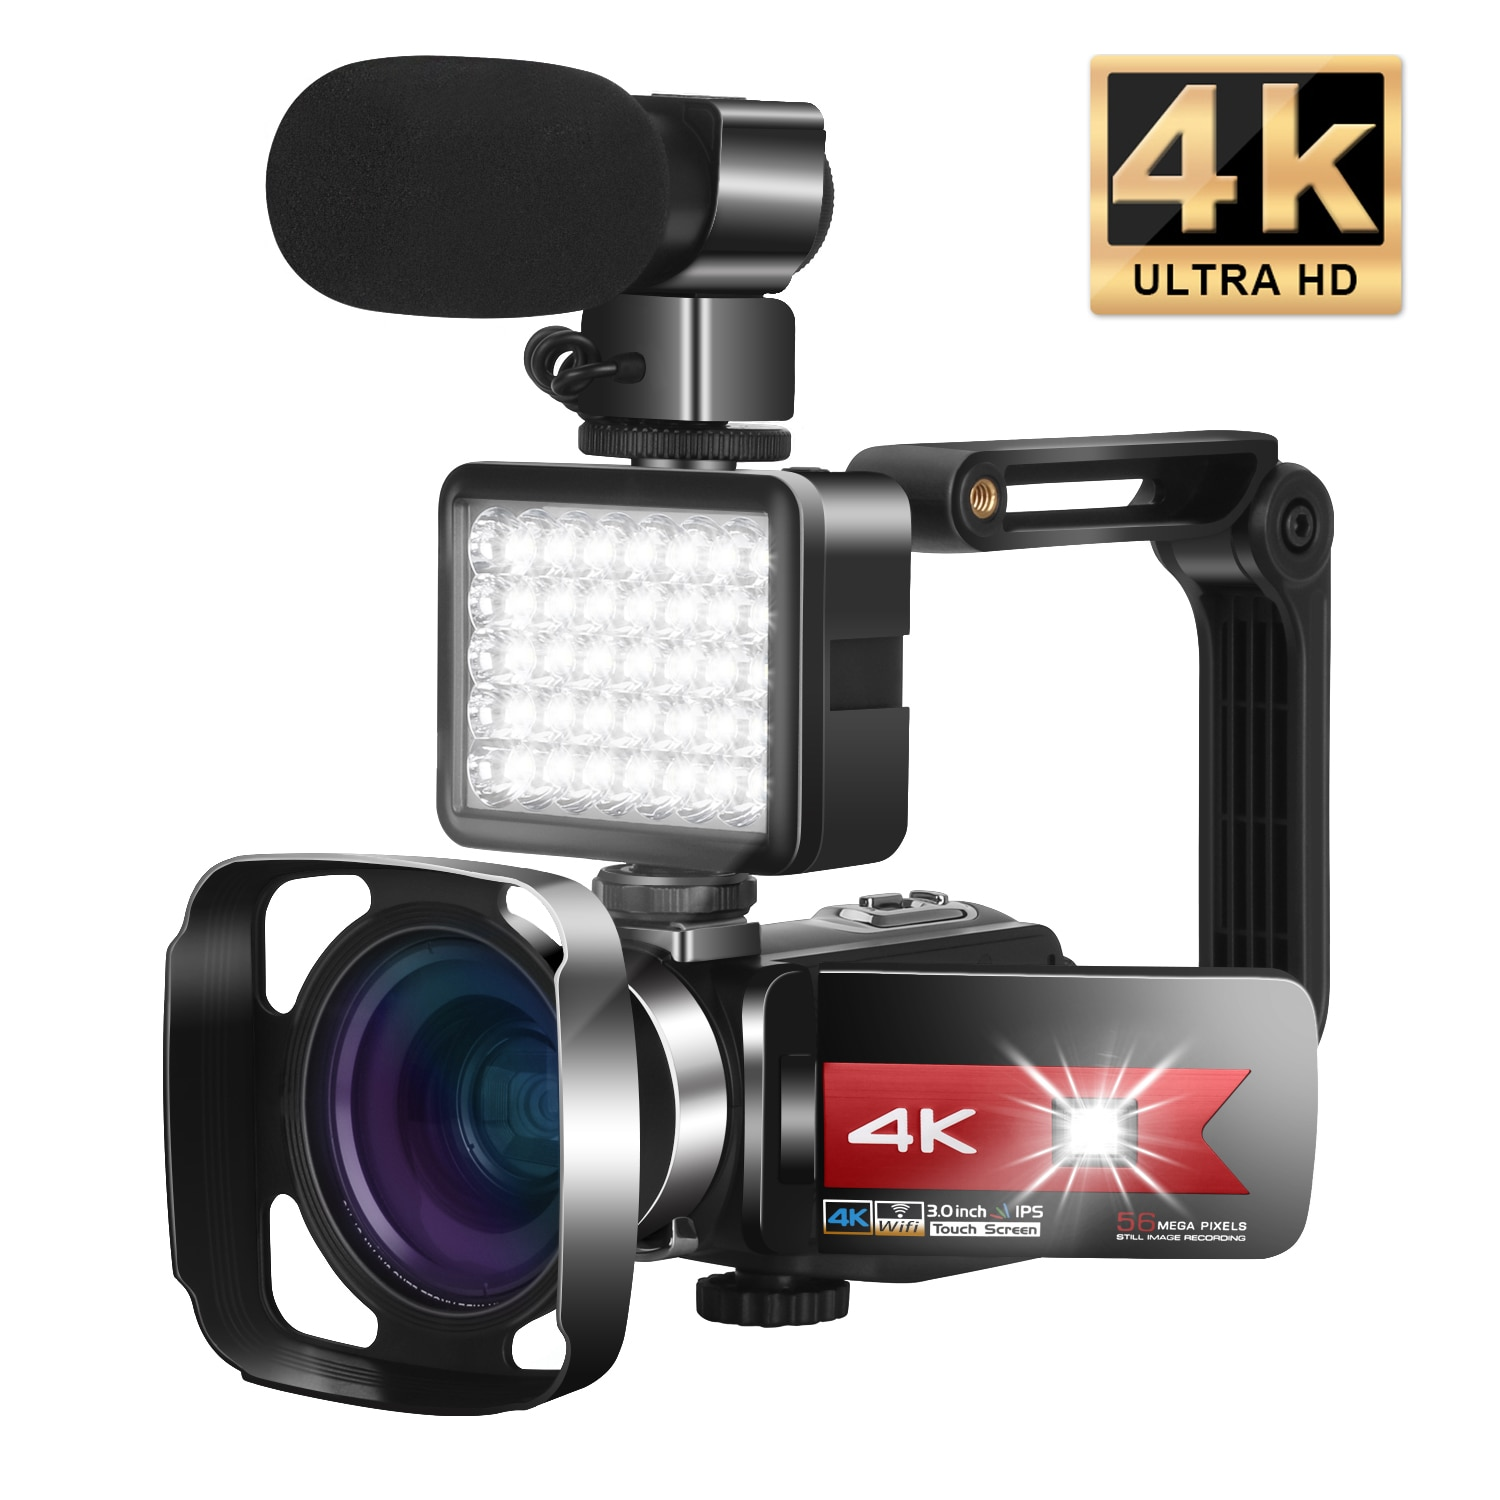 Video Camera 4K Vlogging Camcorder for Live Stream WiFi Webcam Remote Control Night Vision Touch Scr